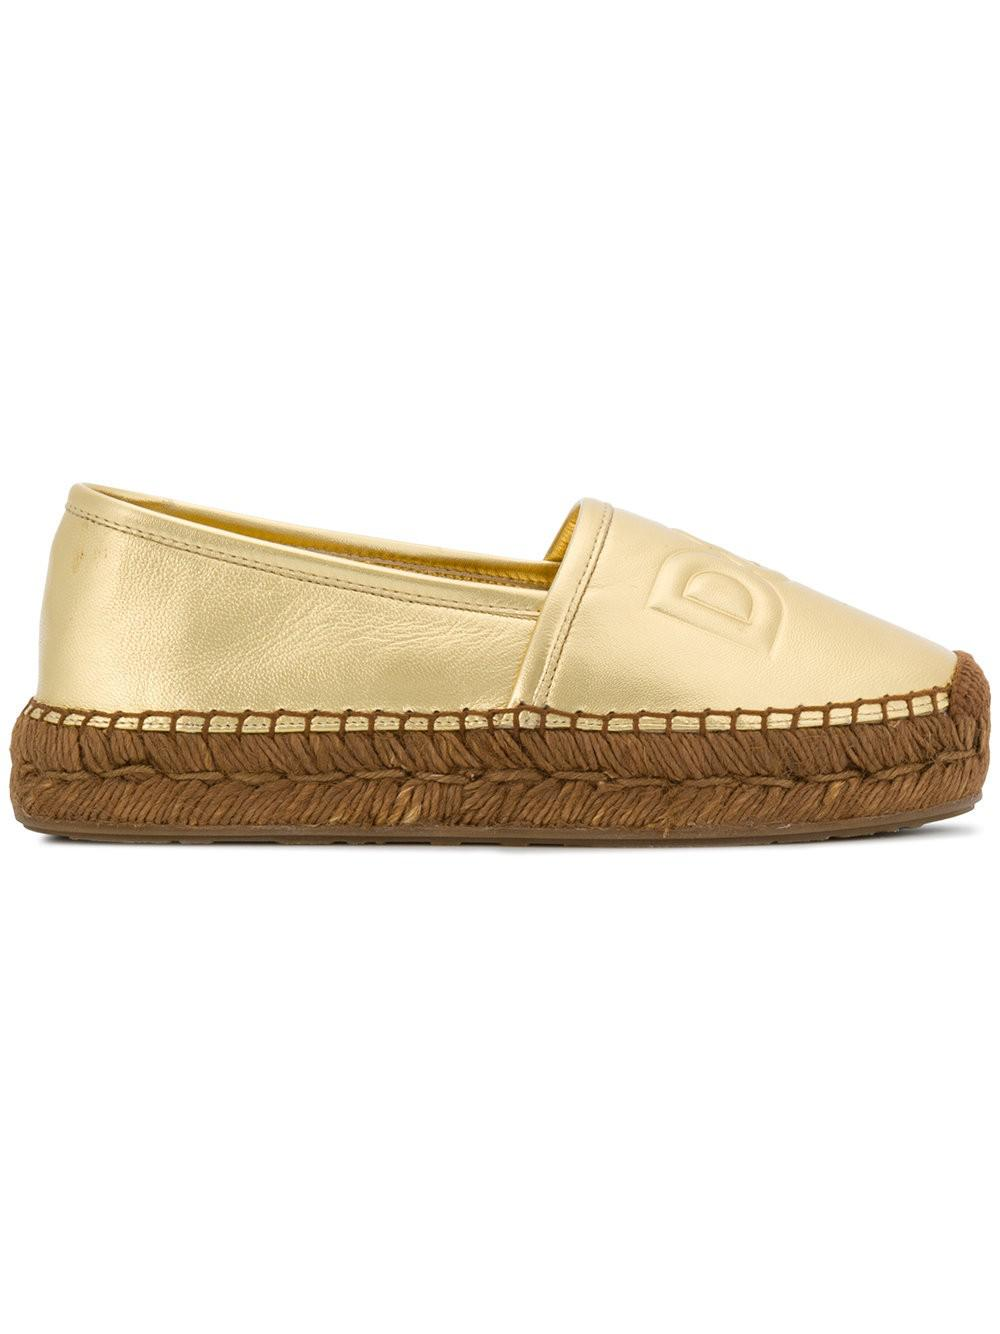 Professional  Dolce & Gabbana Espadrilles AH465 nappa leather Logo Free Shipping Official Site Outlet Popular Outlet Sast Clearance Store Sale Online zs5Cgxp